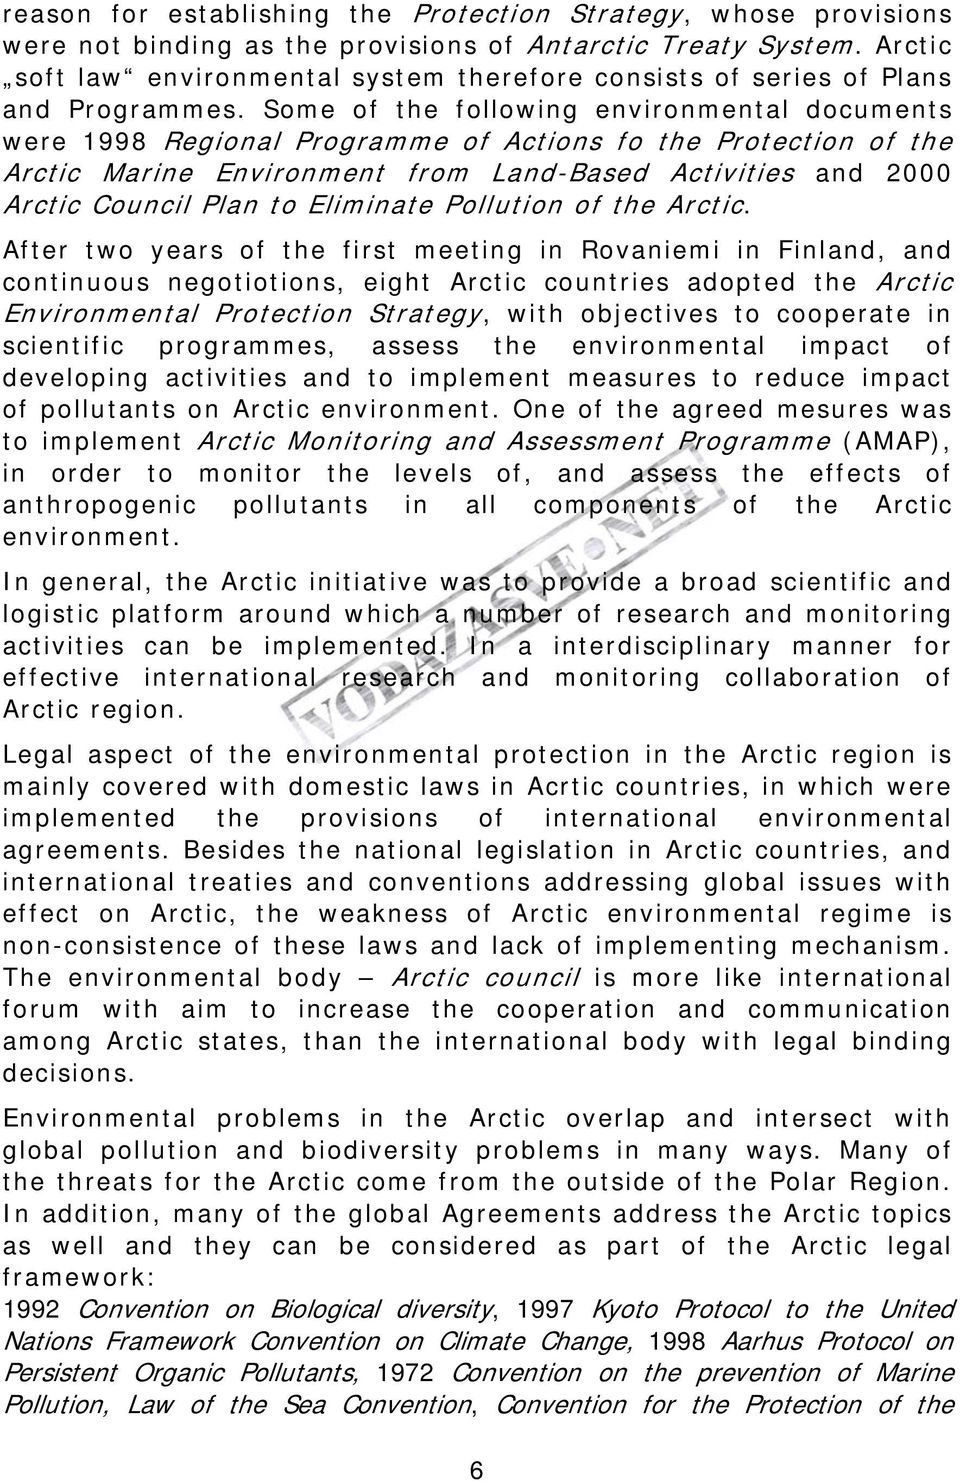 Some of the following environmental documents were 1998 Regional Programme of Actions fo the Protection of the Arctic Marine Environment from Land-Based Activities and 2000 Arctic Council Plan to